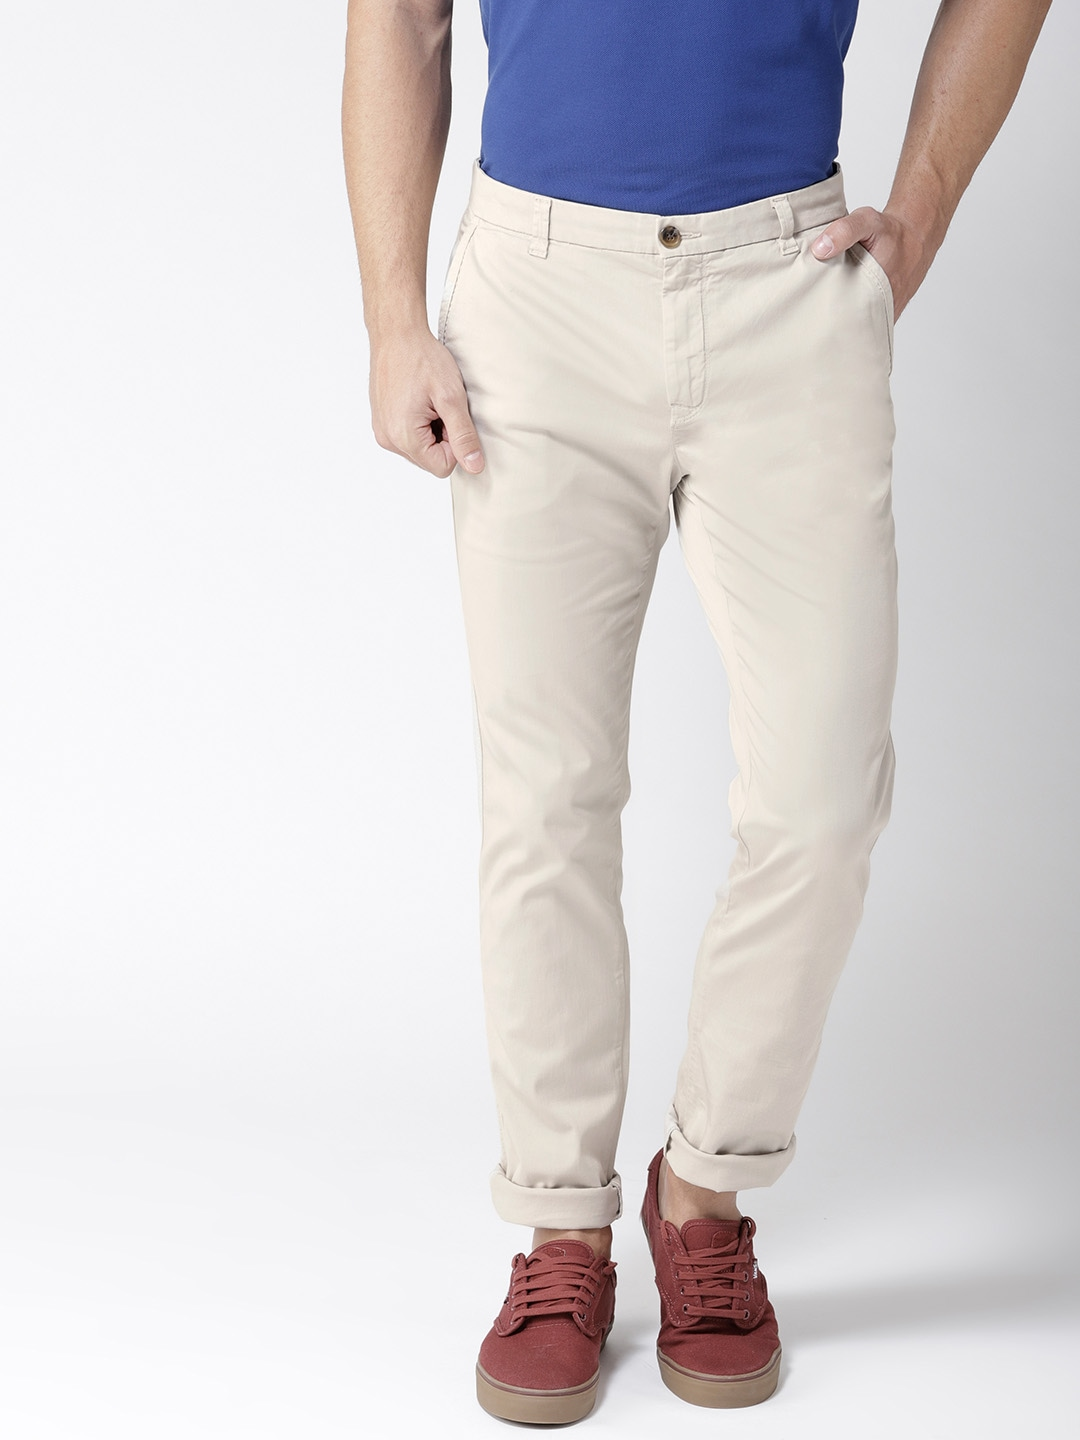 8faa8c01 Men Beige Trousers - Buy Men Beige Trousers online in India